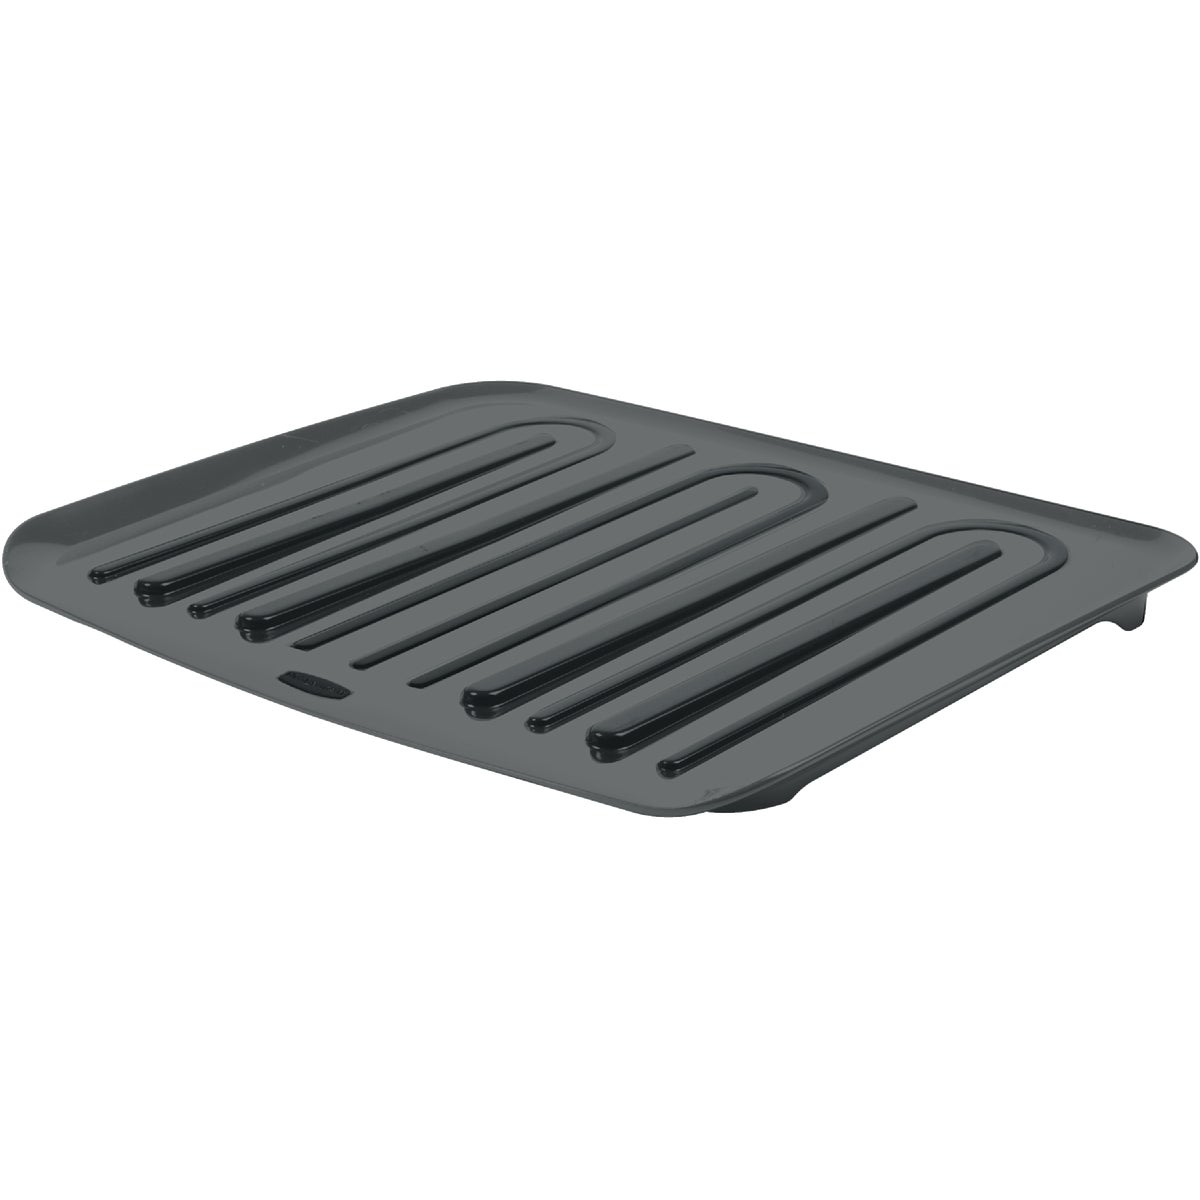 LARGE BLACK DRAINER TRAY